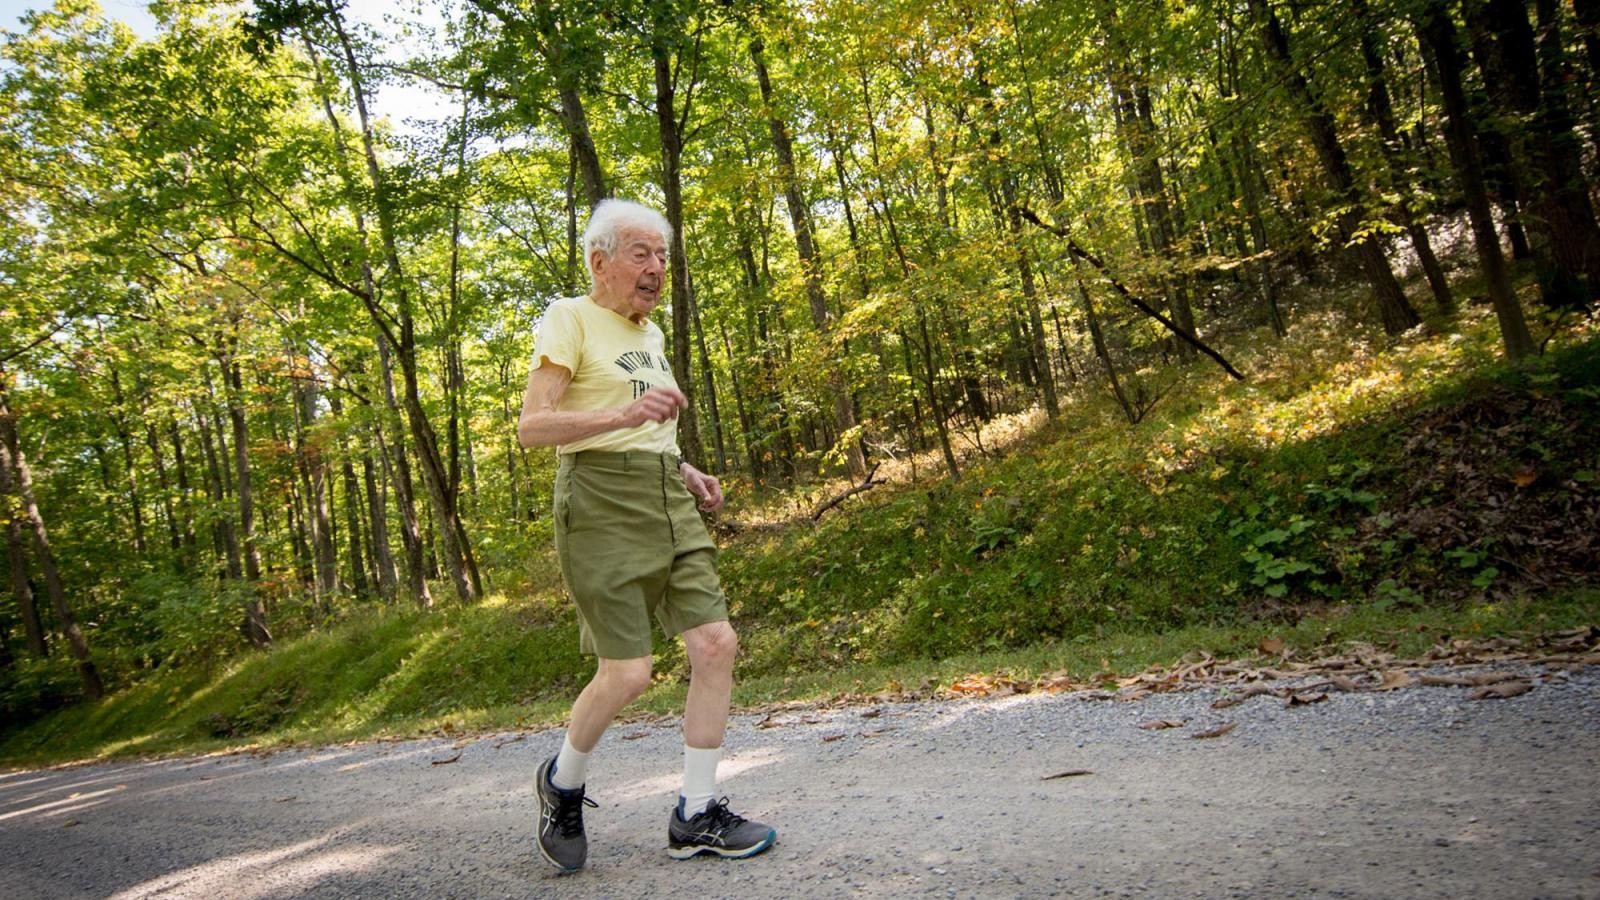 99-year-old George Etzweiler did not finish the Mount Washington Road Race this year but is already planning to do it next year